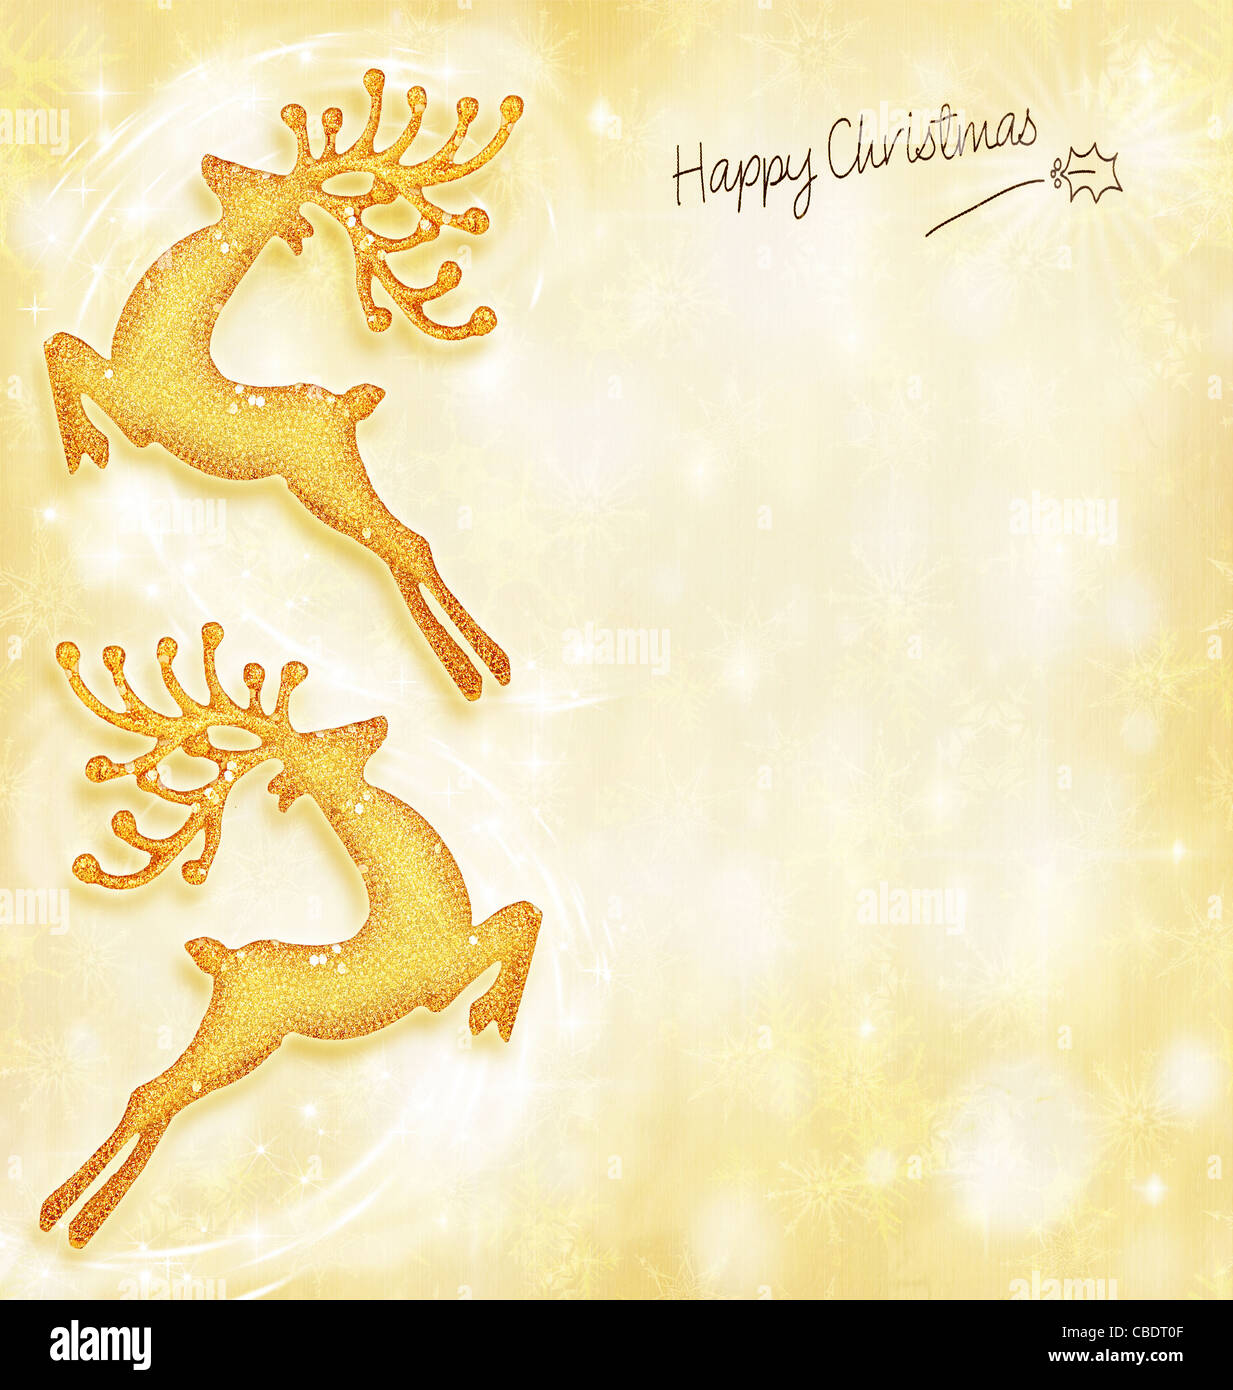 new year holiday card golden background reindeer decorative border traditional tree ornament abstract shiny glowing lights